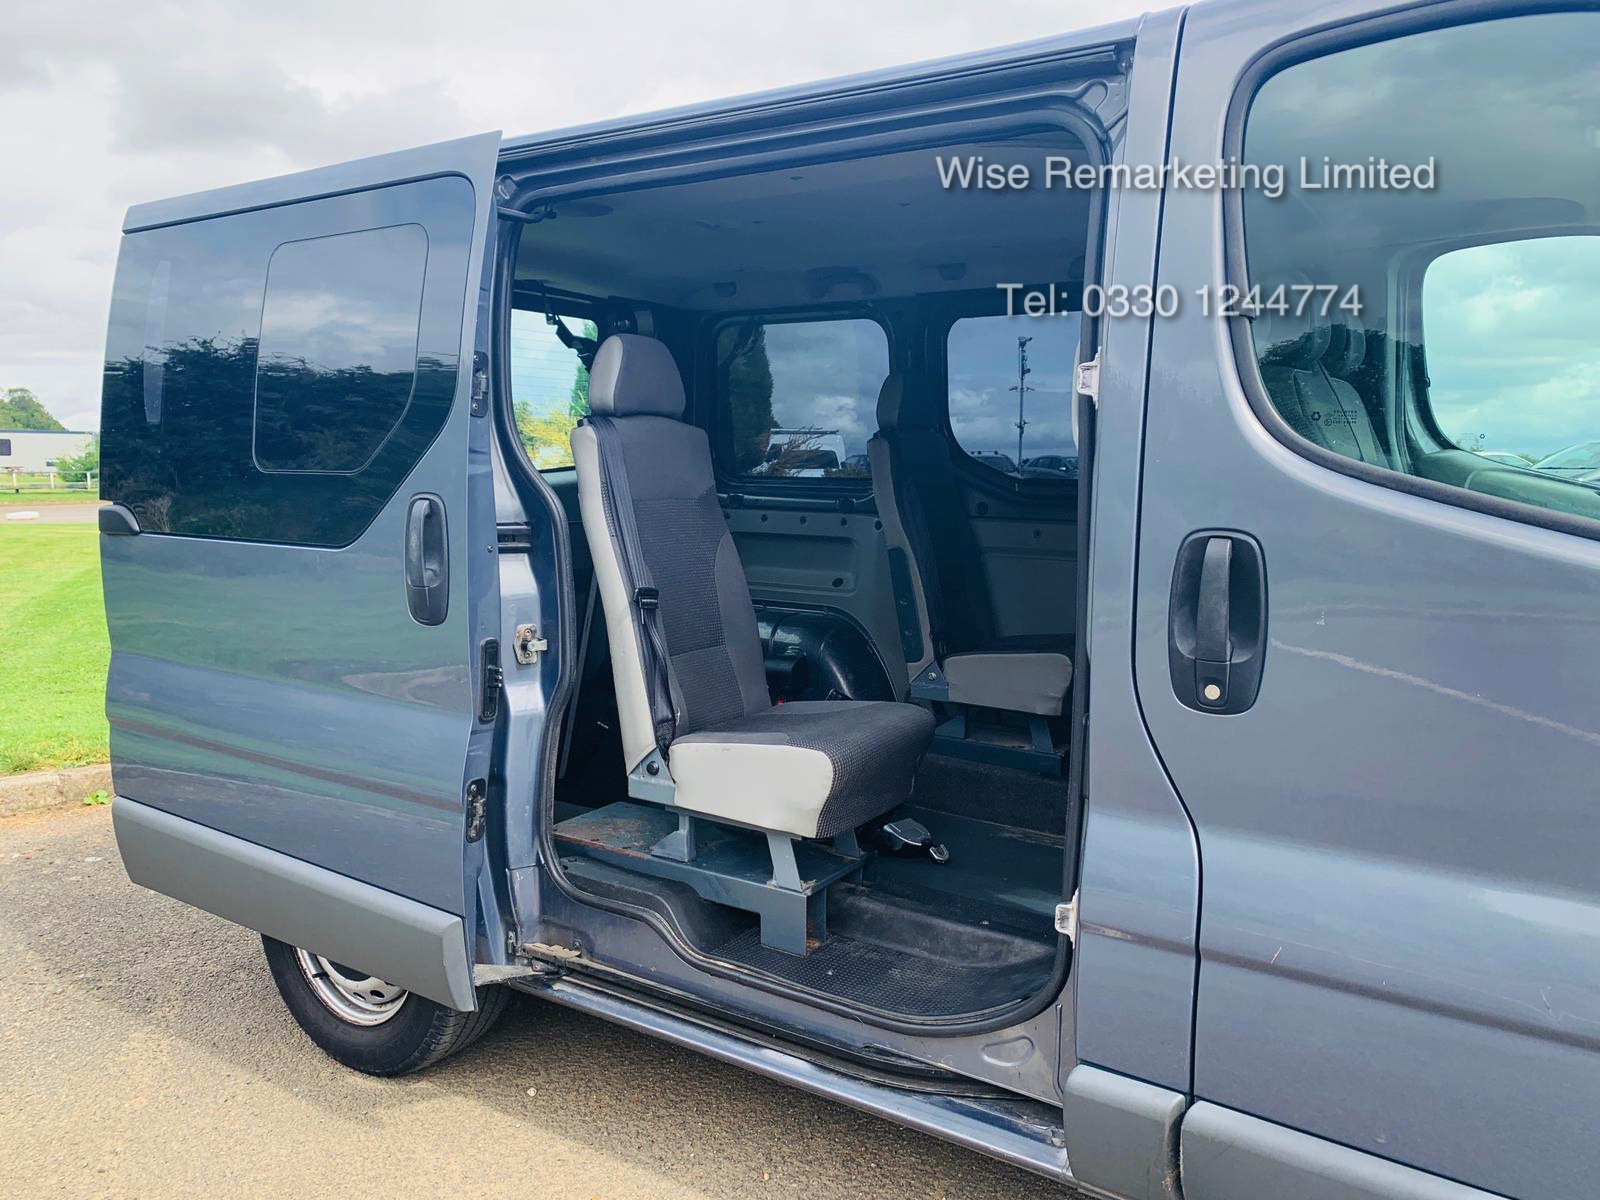 Vauxhall Vivaro 2.0 CDTI 2900 Minibus - 2014 Model - Wheel Chair Access -1 Owner From New -History - Image 19 of 21